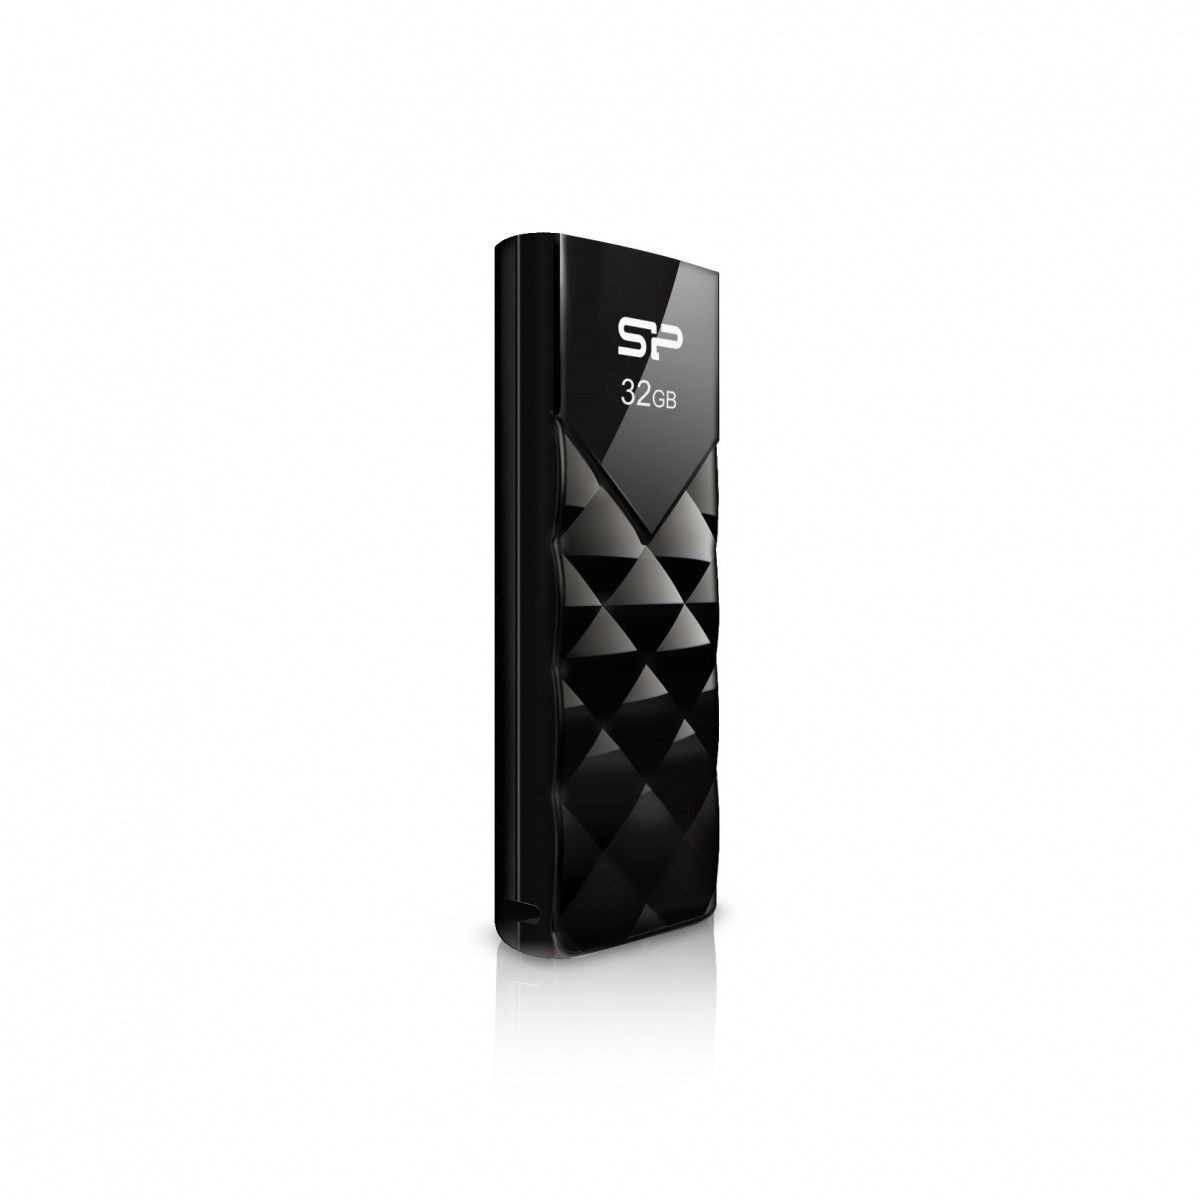 Silicon-Power Pendrive Silicon Power 32GB Ultima U03 Black Diamond Cut